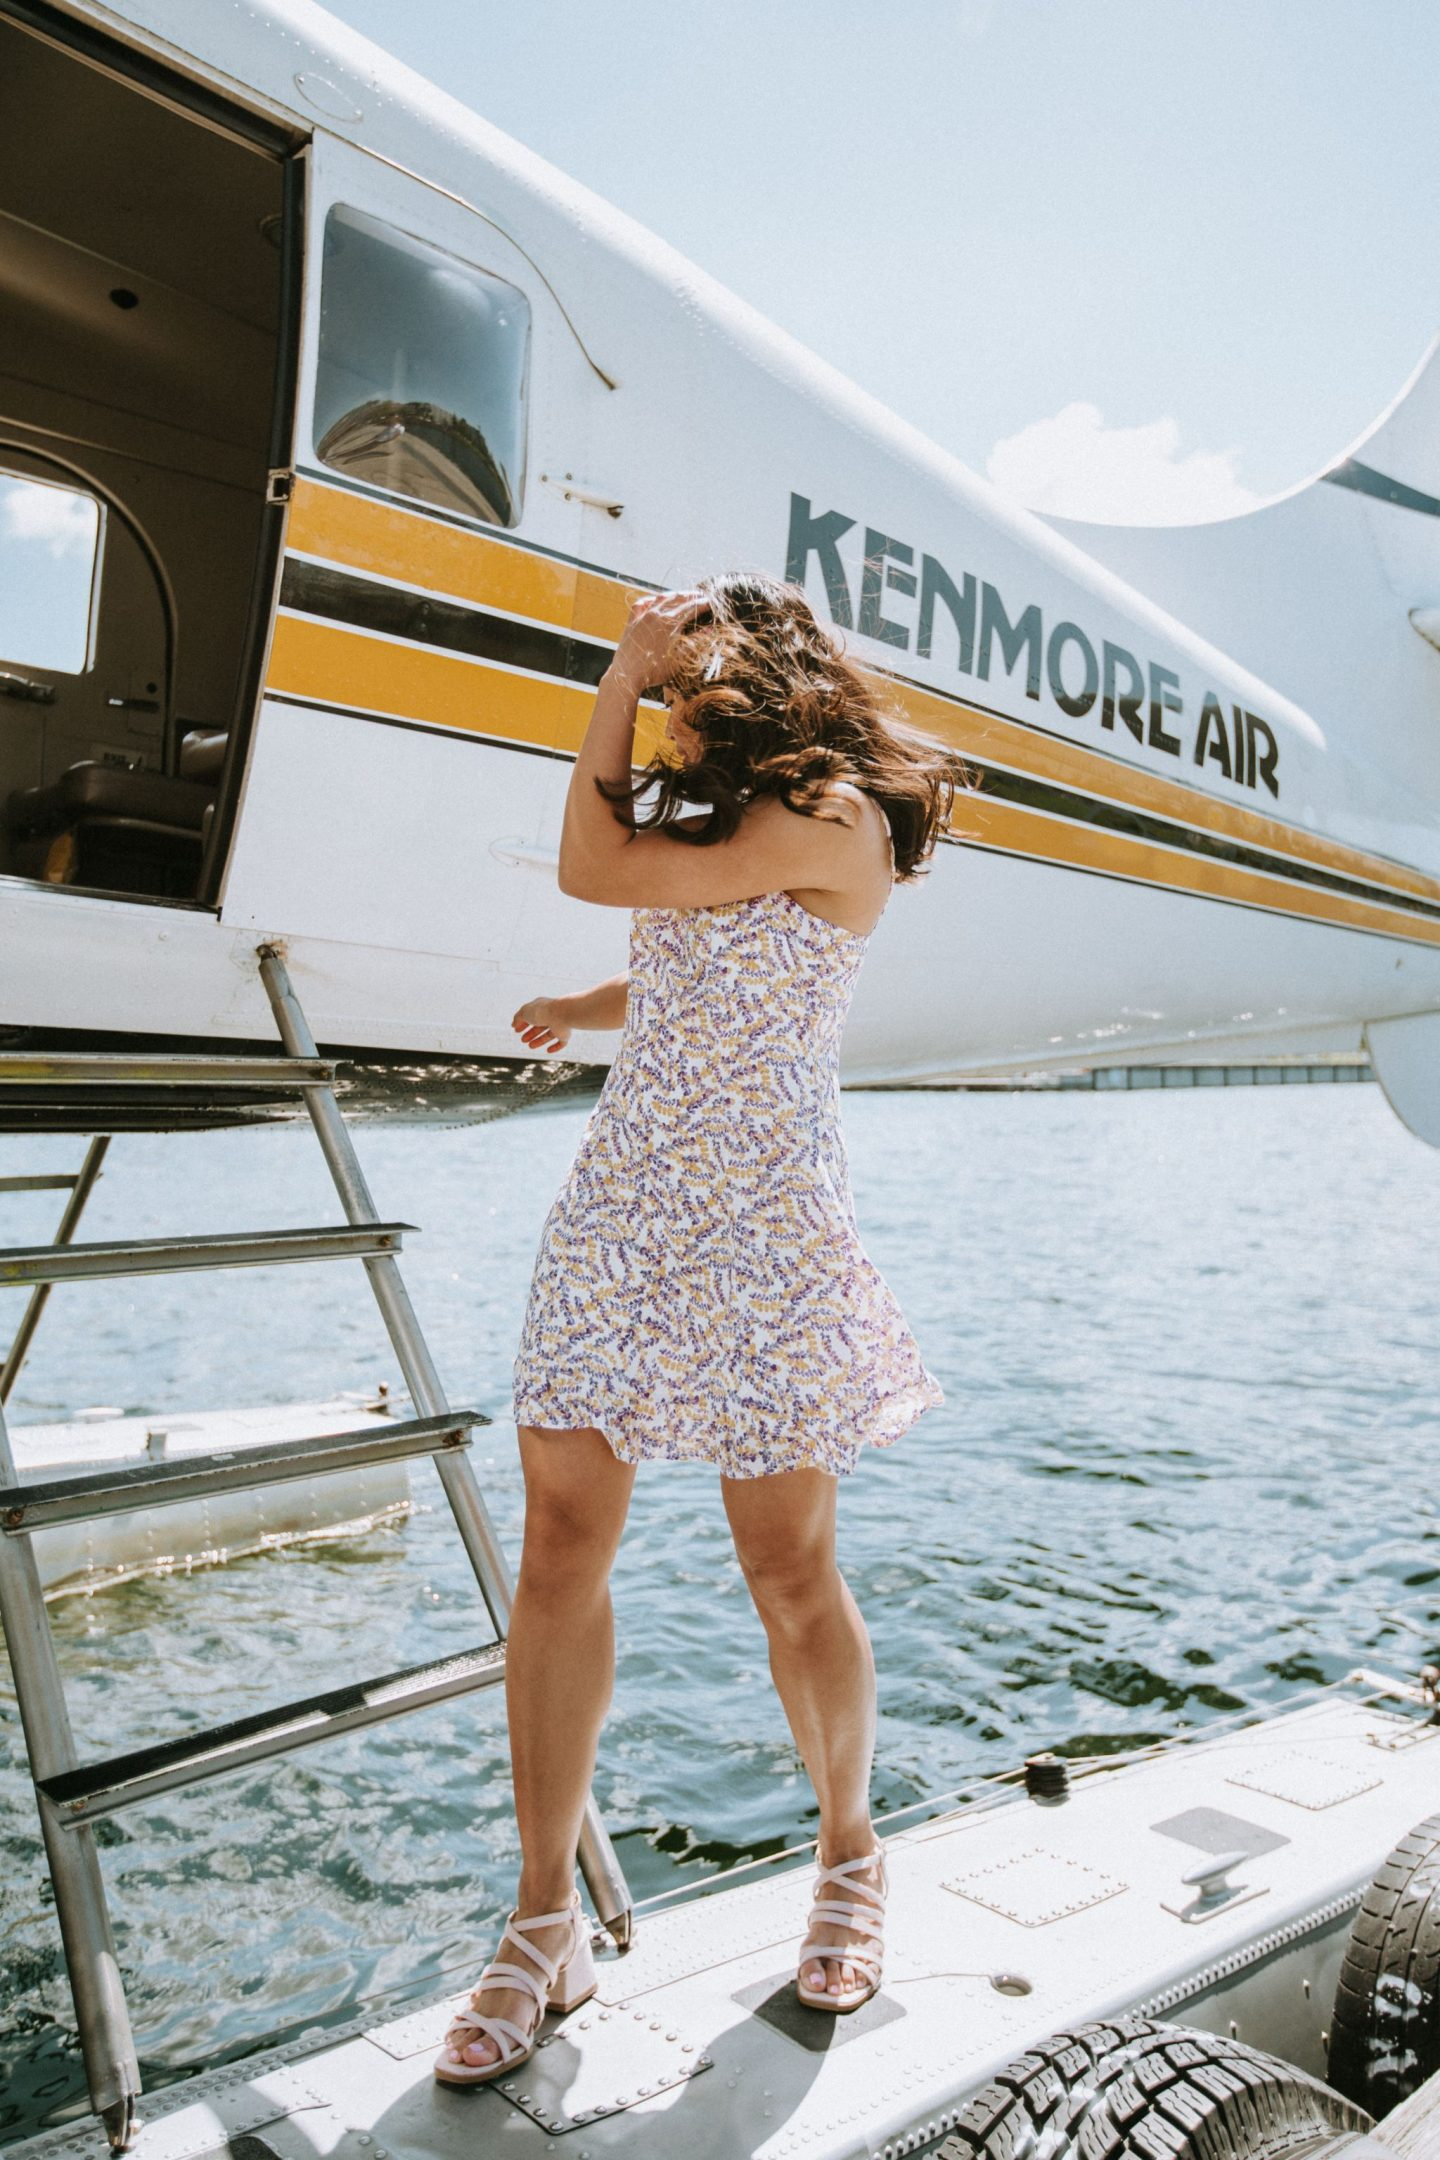 Summer dresses from Lulus  - Lulus – Lulus Dress – Love Lulus – Lulus Ambassador – Summer Dresses – Summer dresses from Lulus – Faithfull the Brand - Kenmore Air